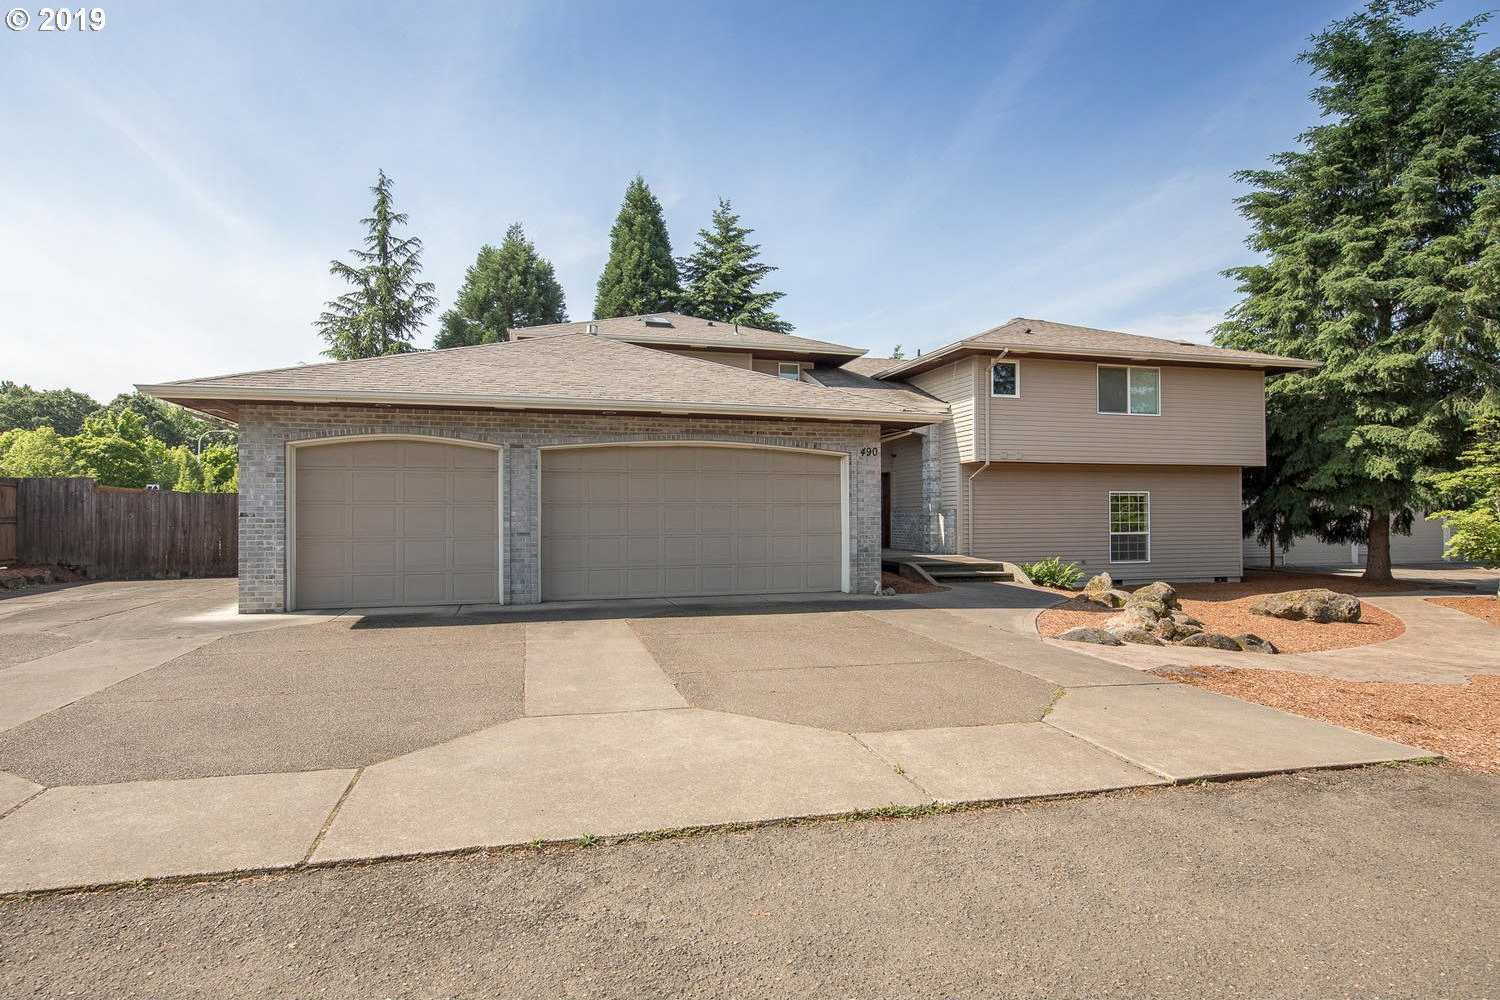 $1,225,000 - 4Br/3Ba -  for Sale in Elmonica, Beaverton